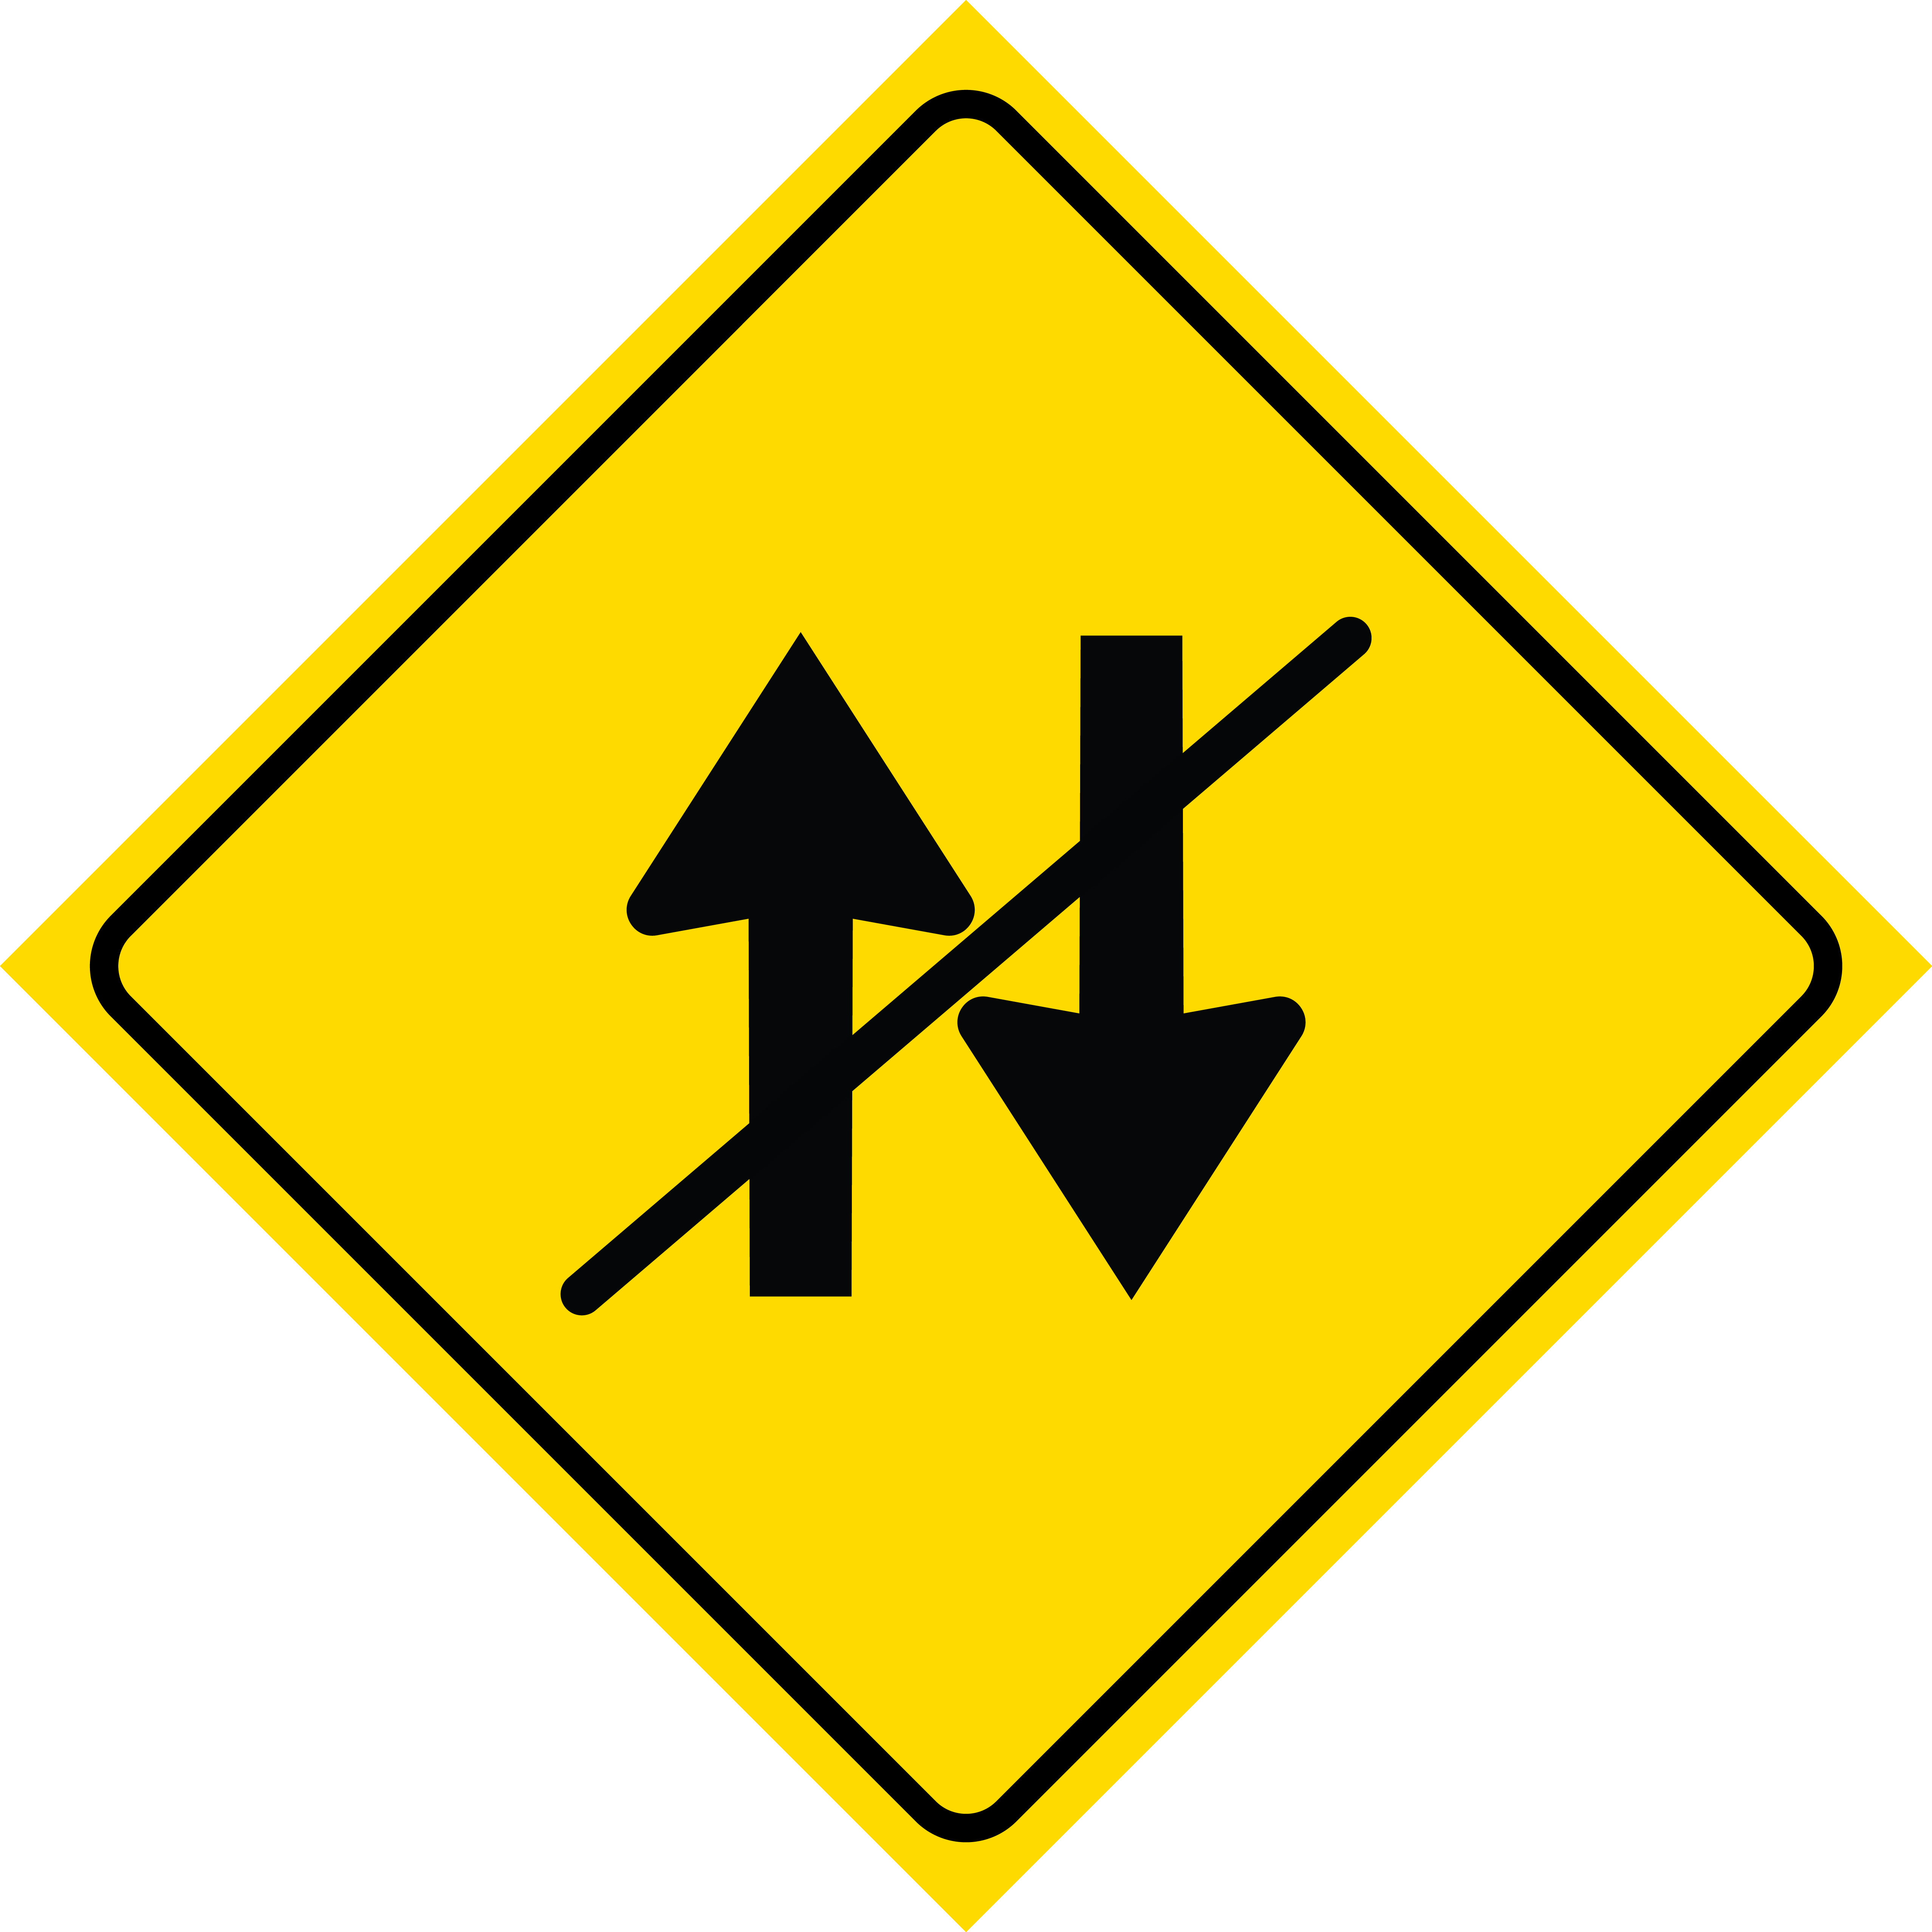 Details about Diamond No Up Down Arrow Street Road Sign Plastic Square  Single Sign, 12x12